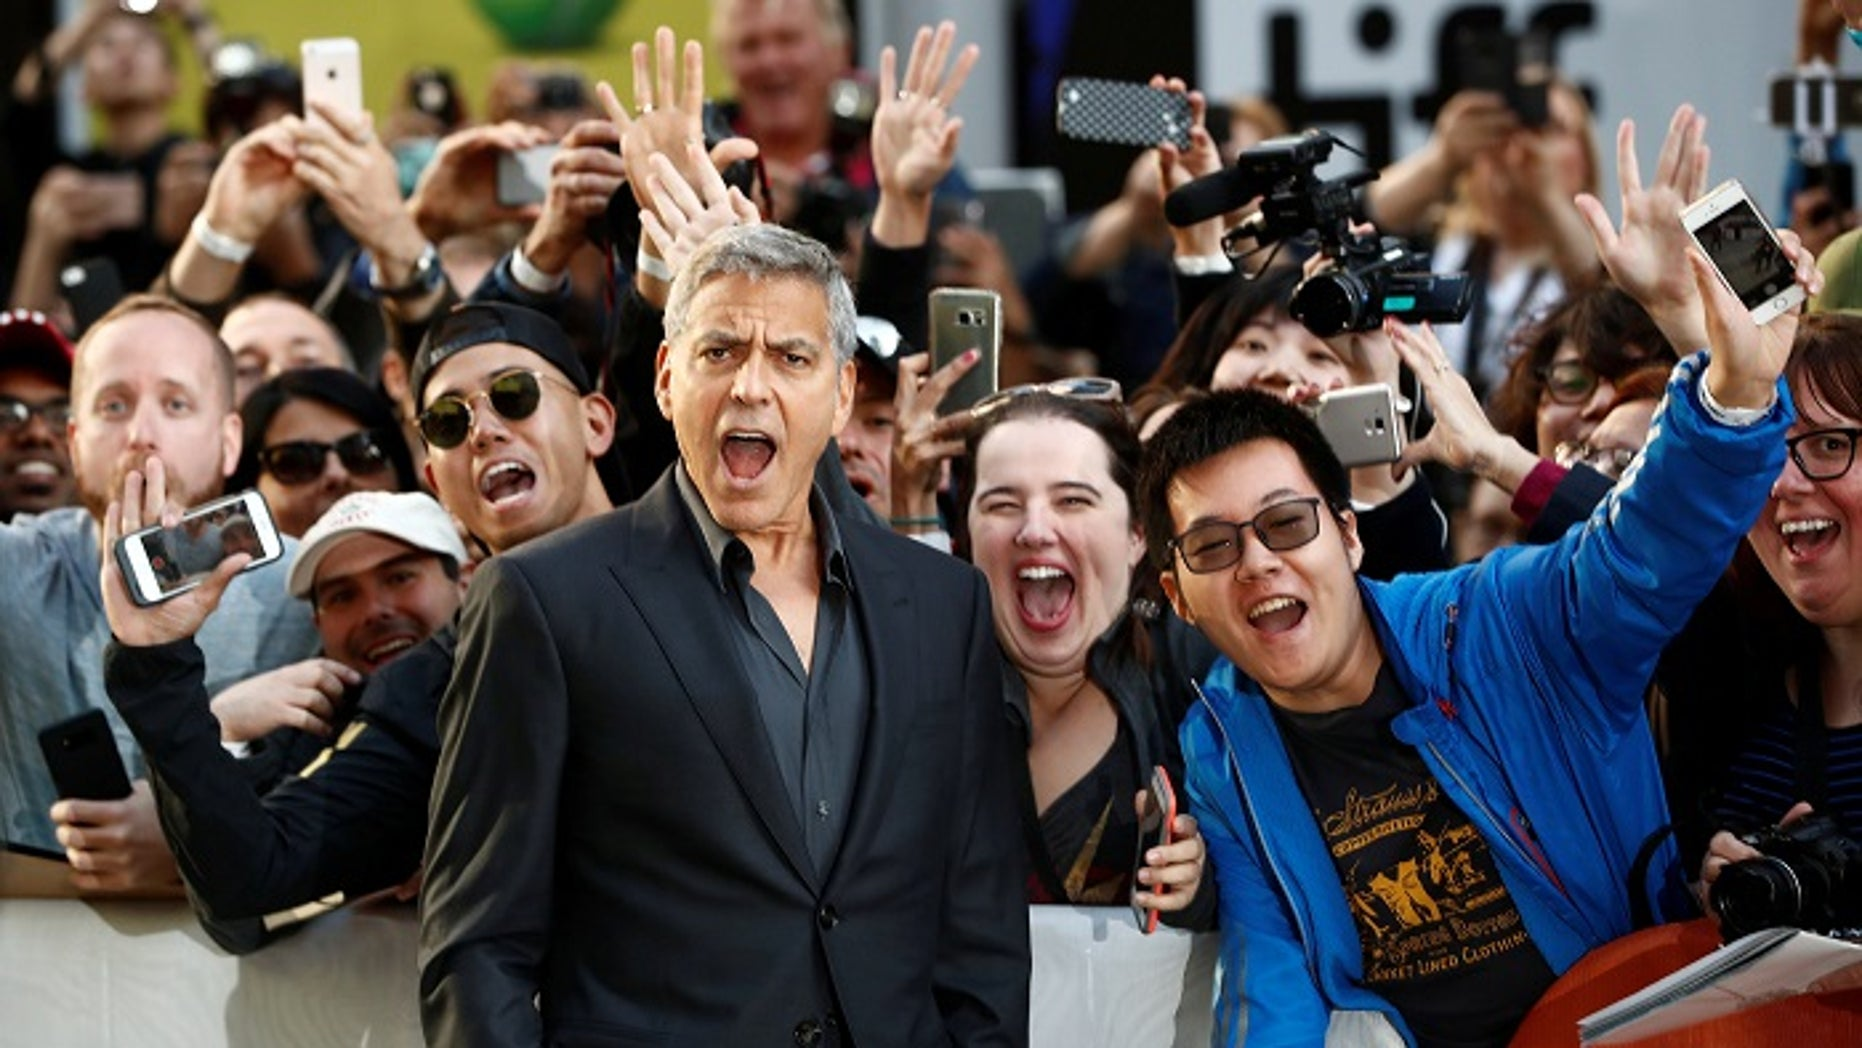 """George Clooney's former """"ER"""" star claimed the A-list star """"helped blacklist"""" her from Hollywood after she reported being harassed on the set."""